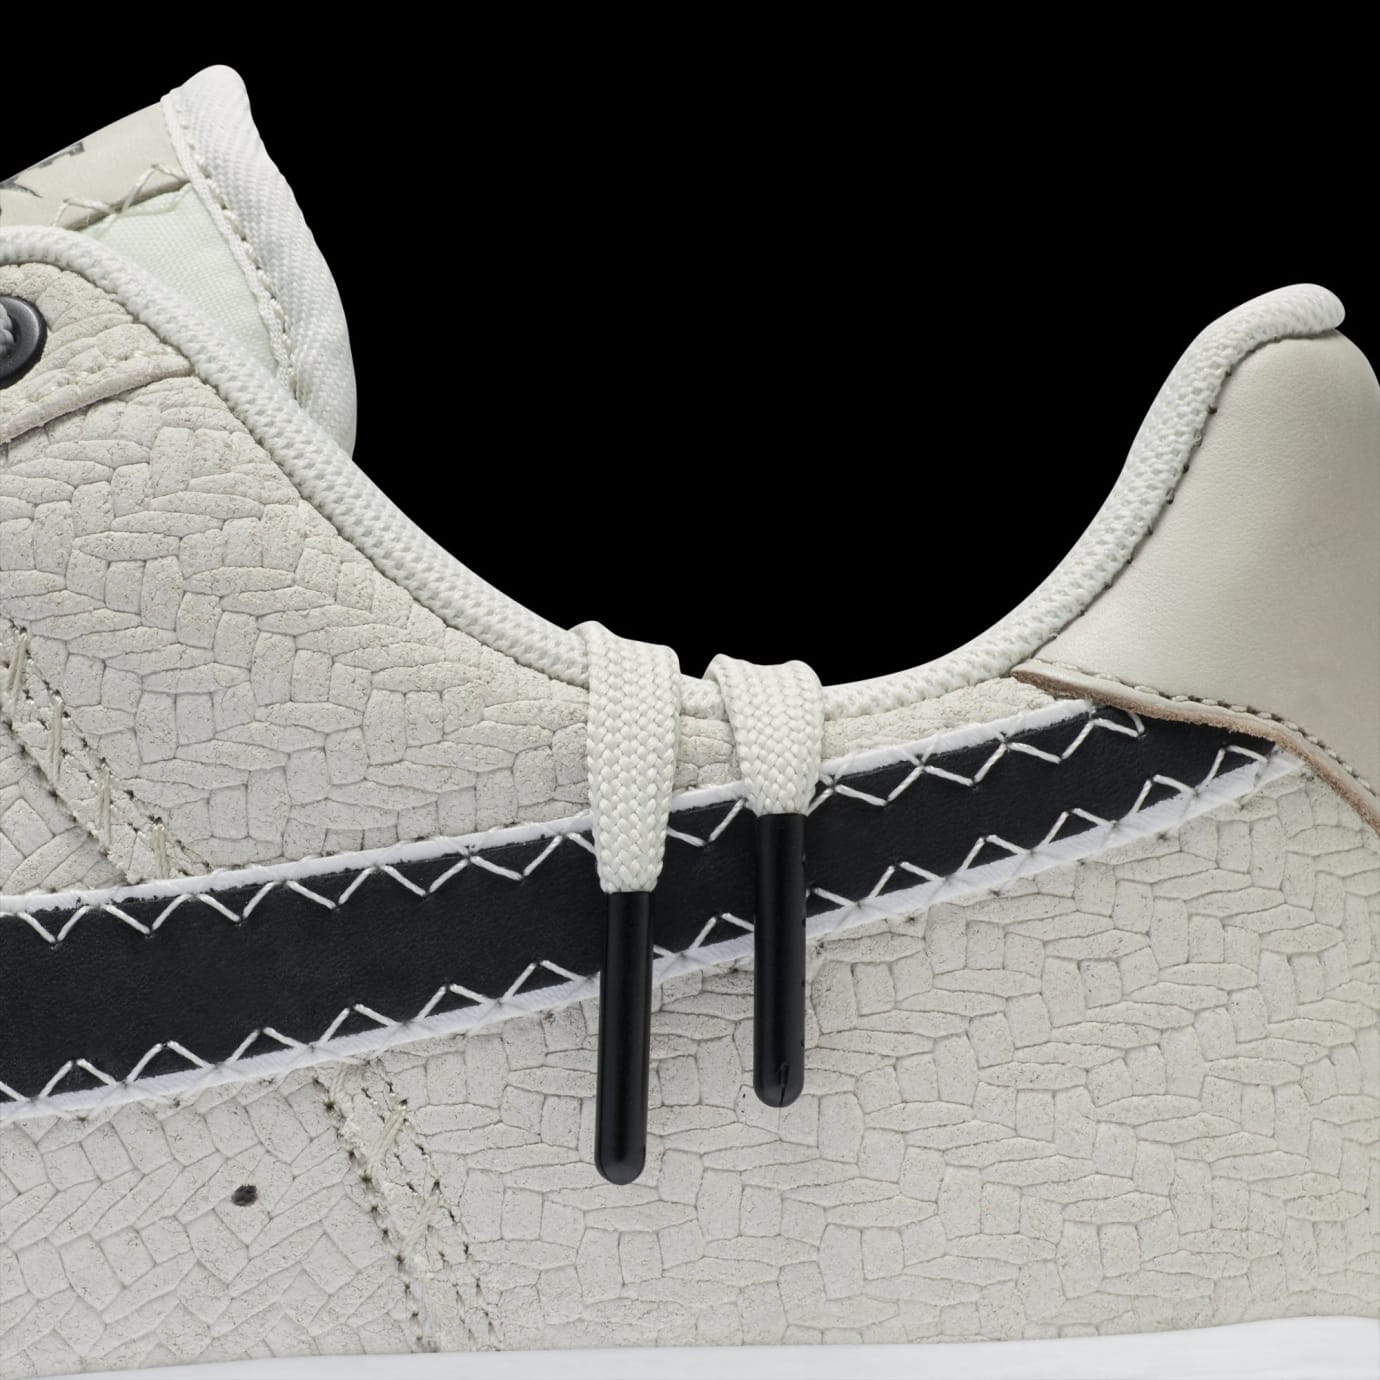 new style b1b42 f6e63 Nike Air Force 1 Low 'N7' AO2369-001 Release Date | Sole Collector